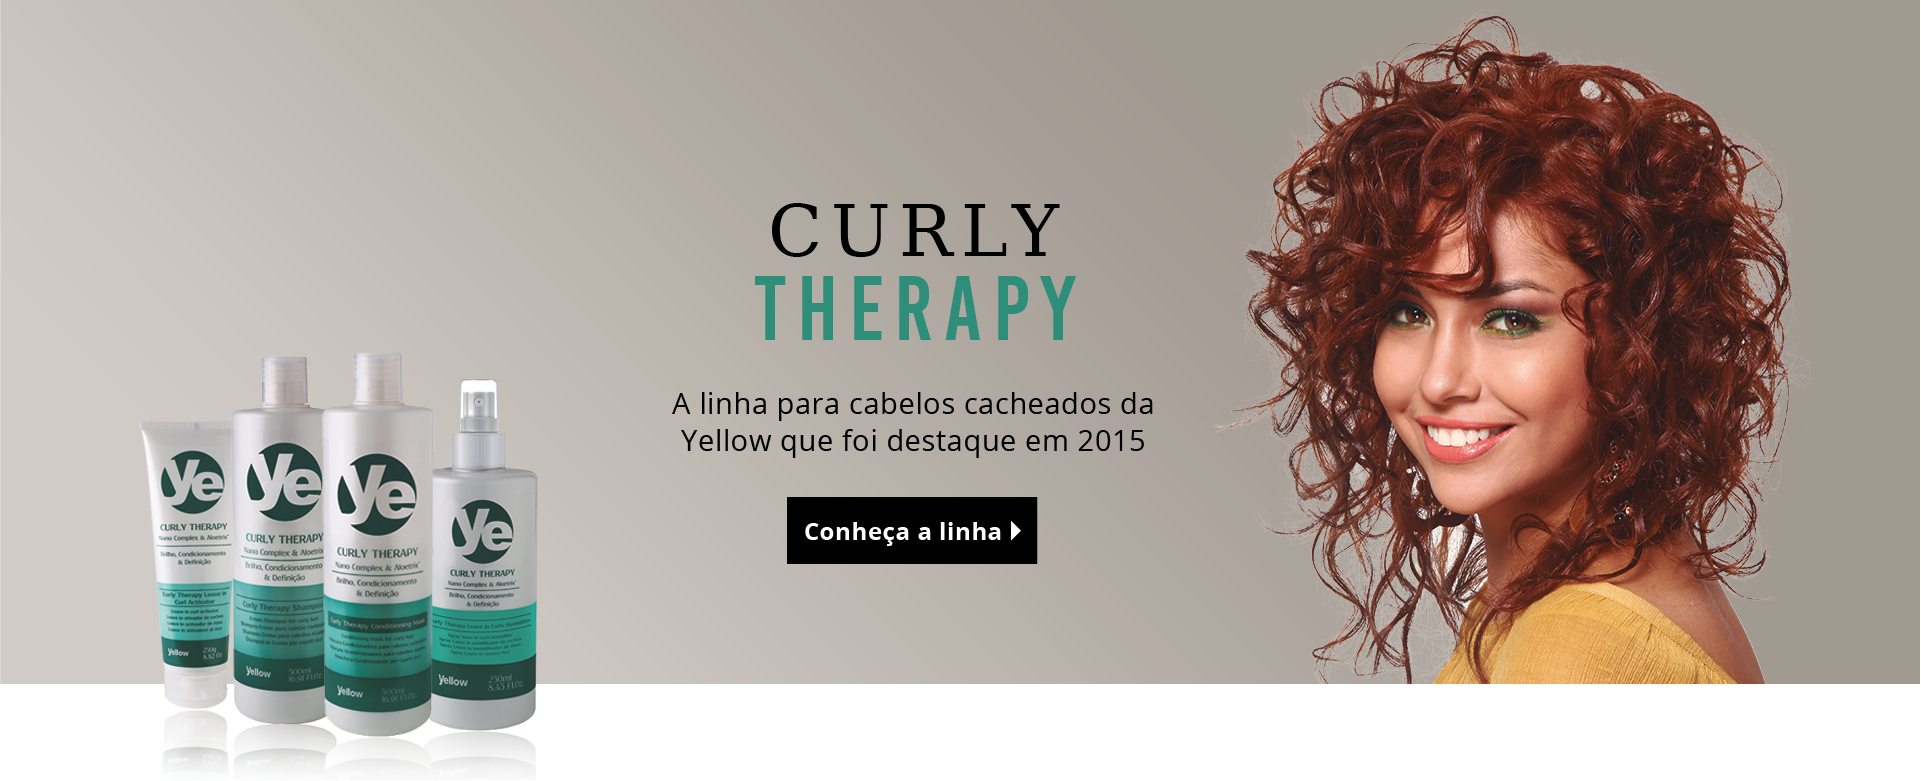 Curly Therapy